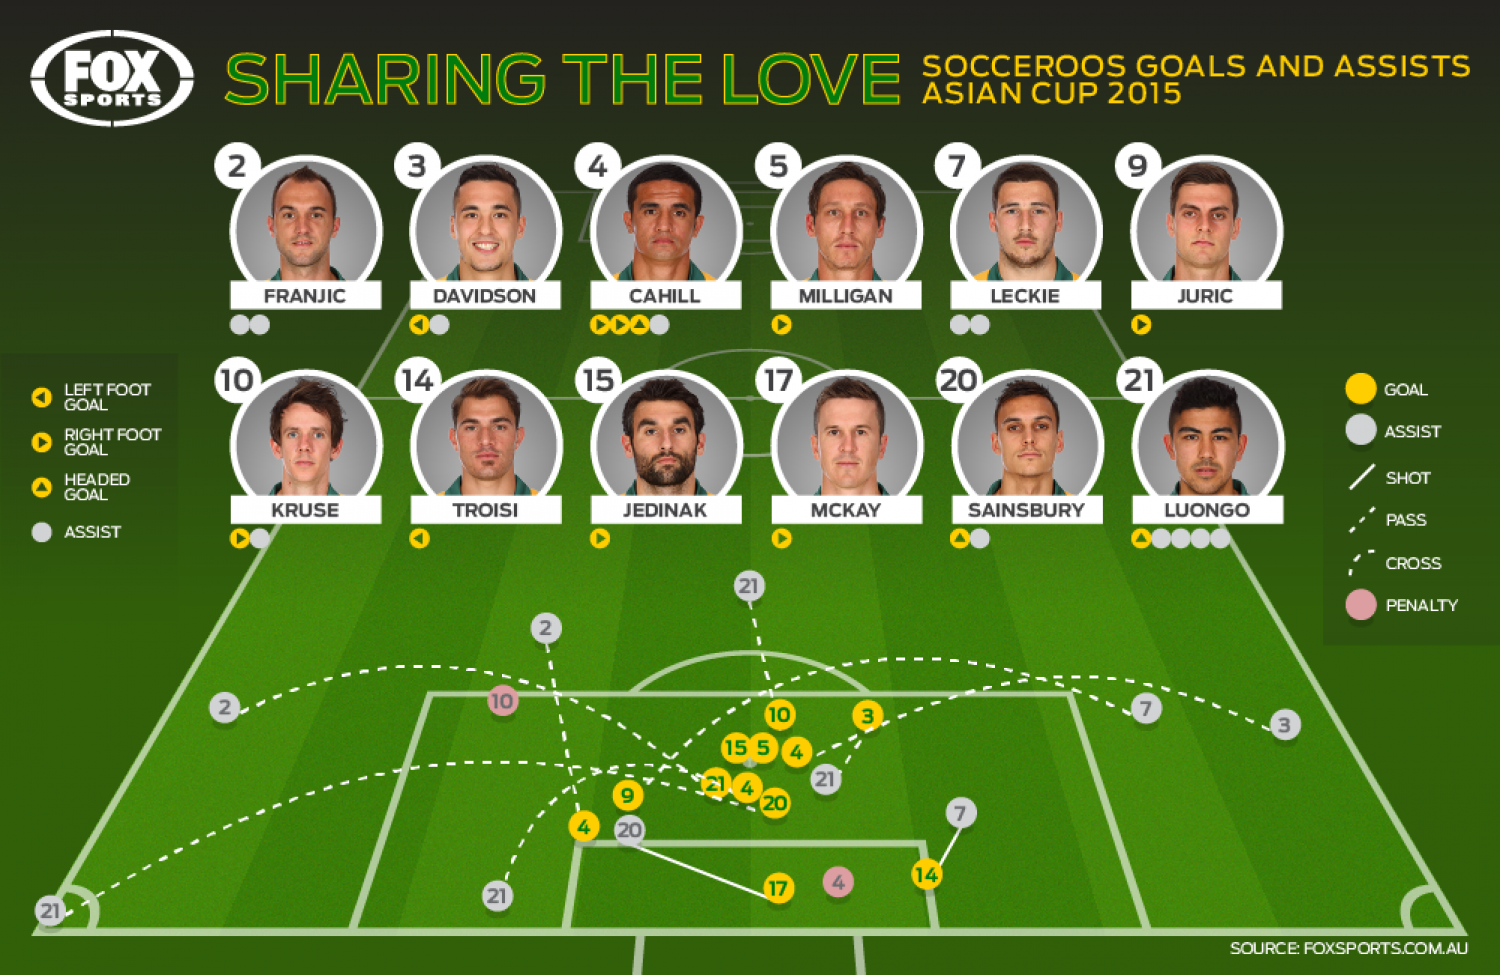 Sharing the love - Socceroos Goals and Assists - Asian Cup 2015 Infographic